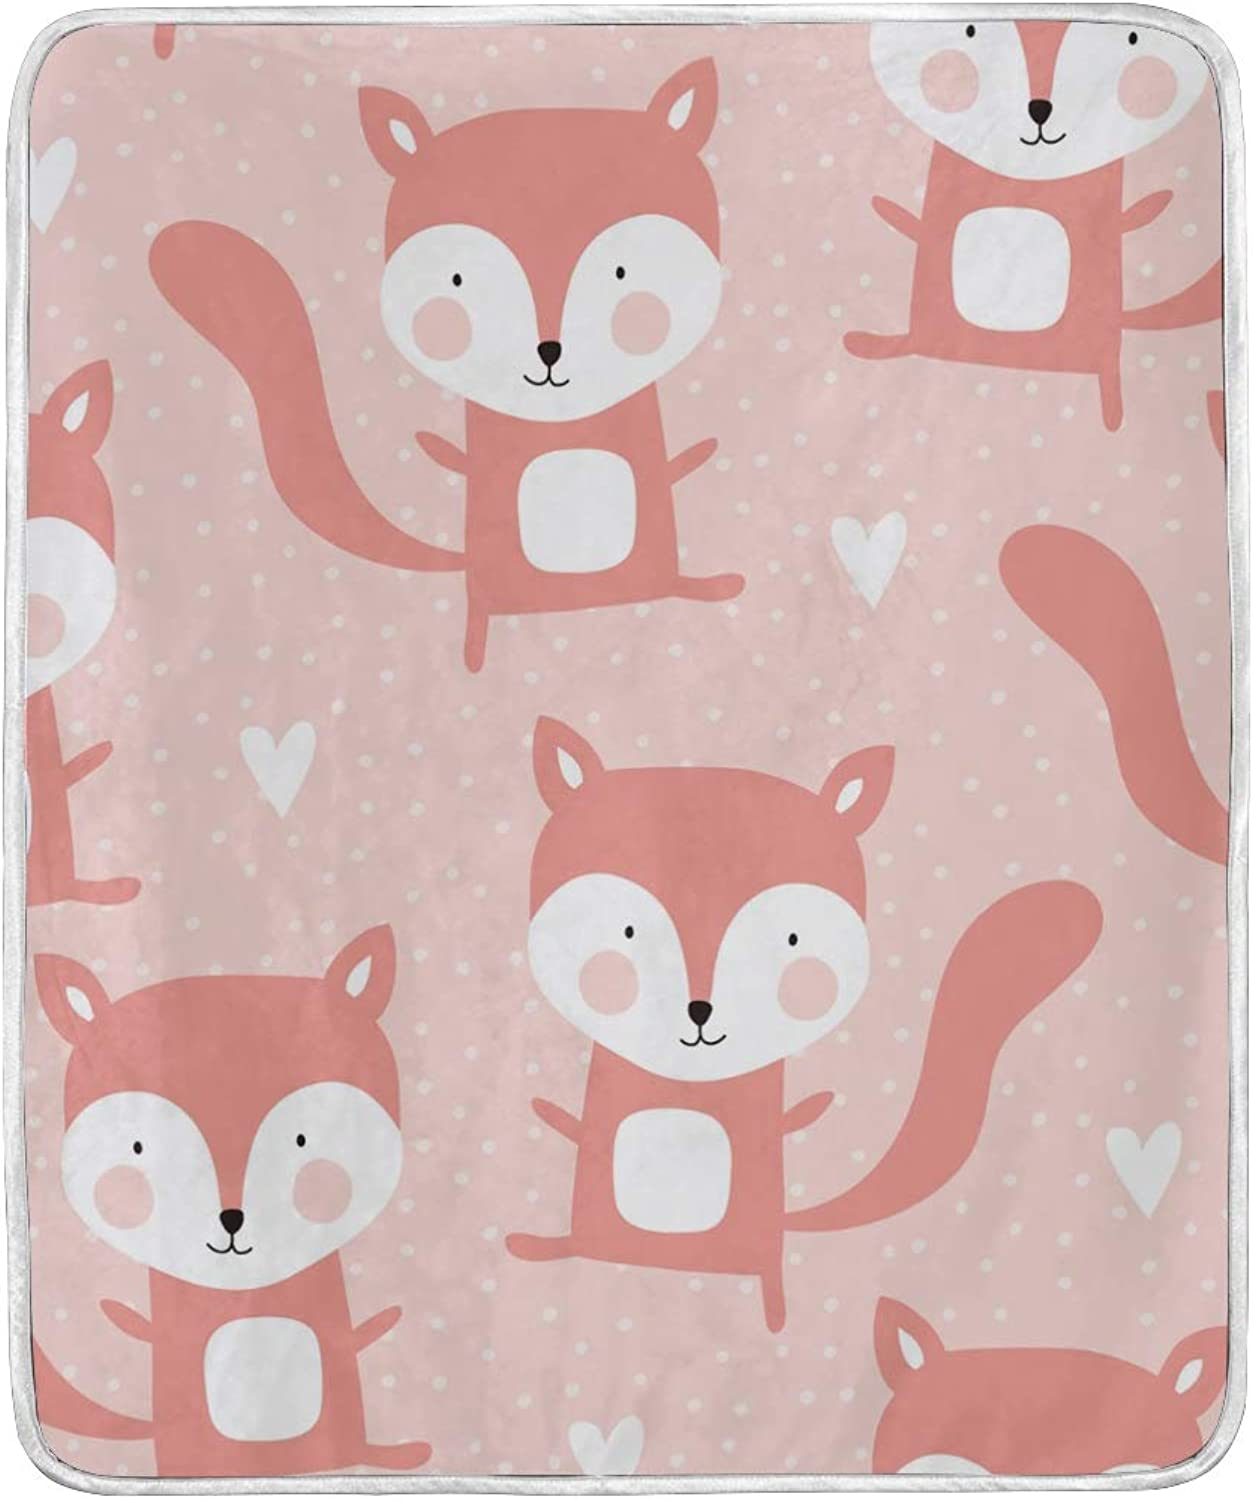 My Daily Cute Fox Cartoon Throw Blanket Polyester Microfiber Lightweight Couch Bed Blanket 50x60 inch